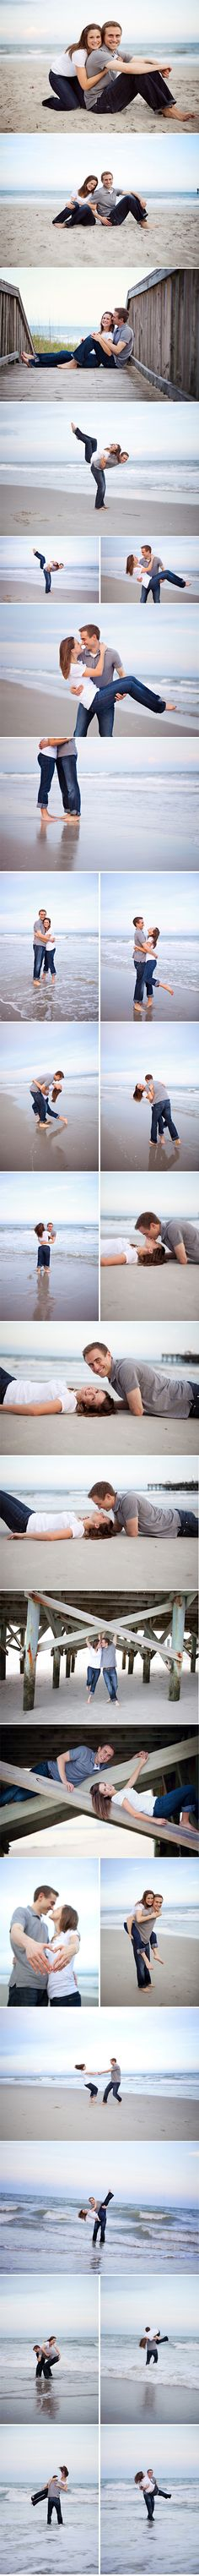 Engagement photos on the beach! So cute